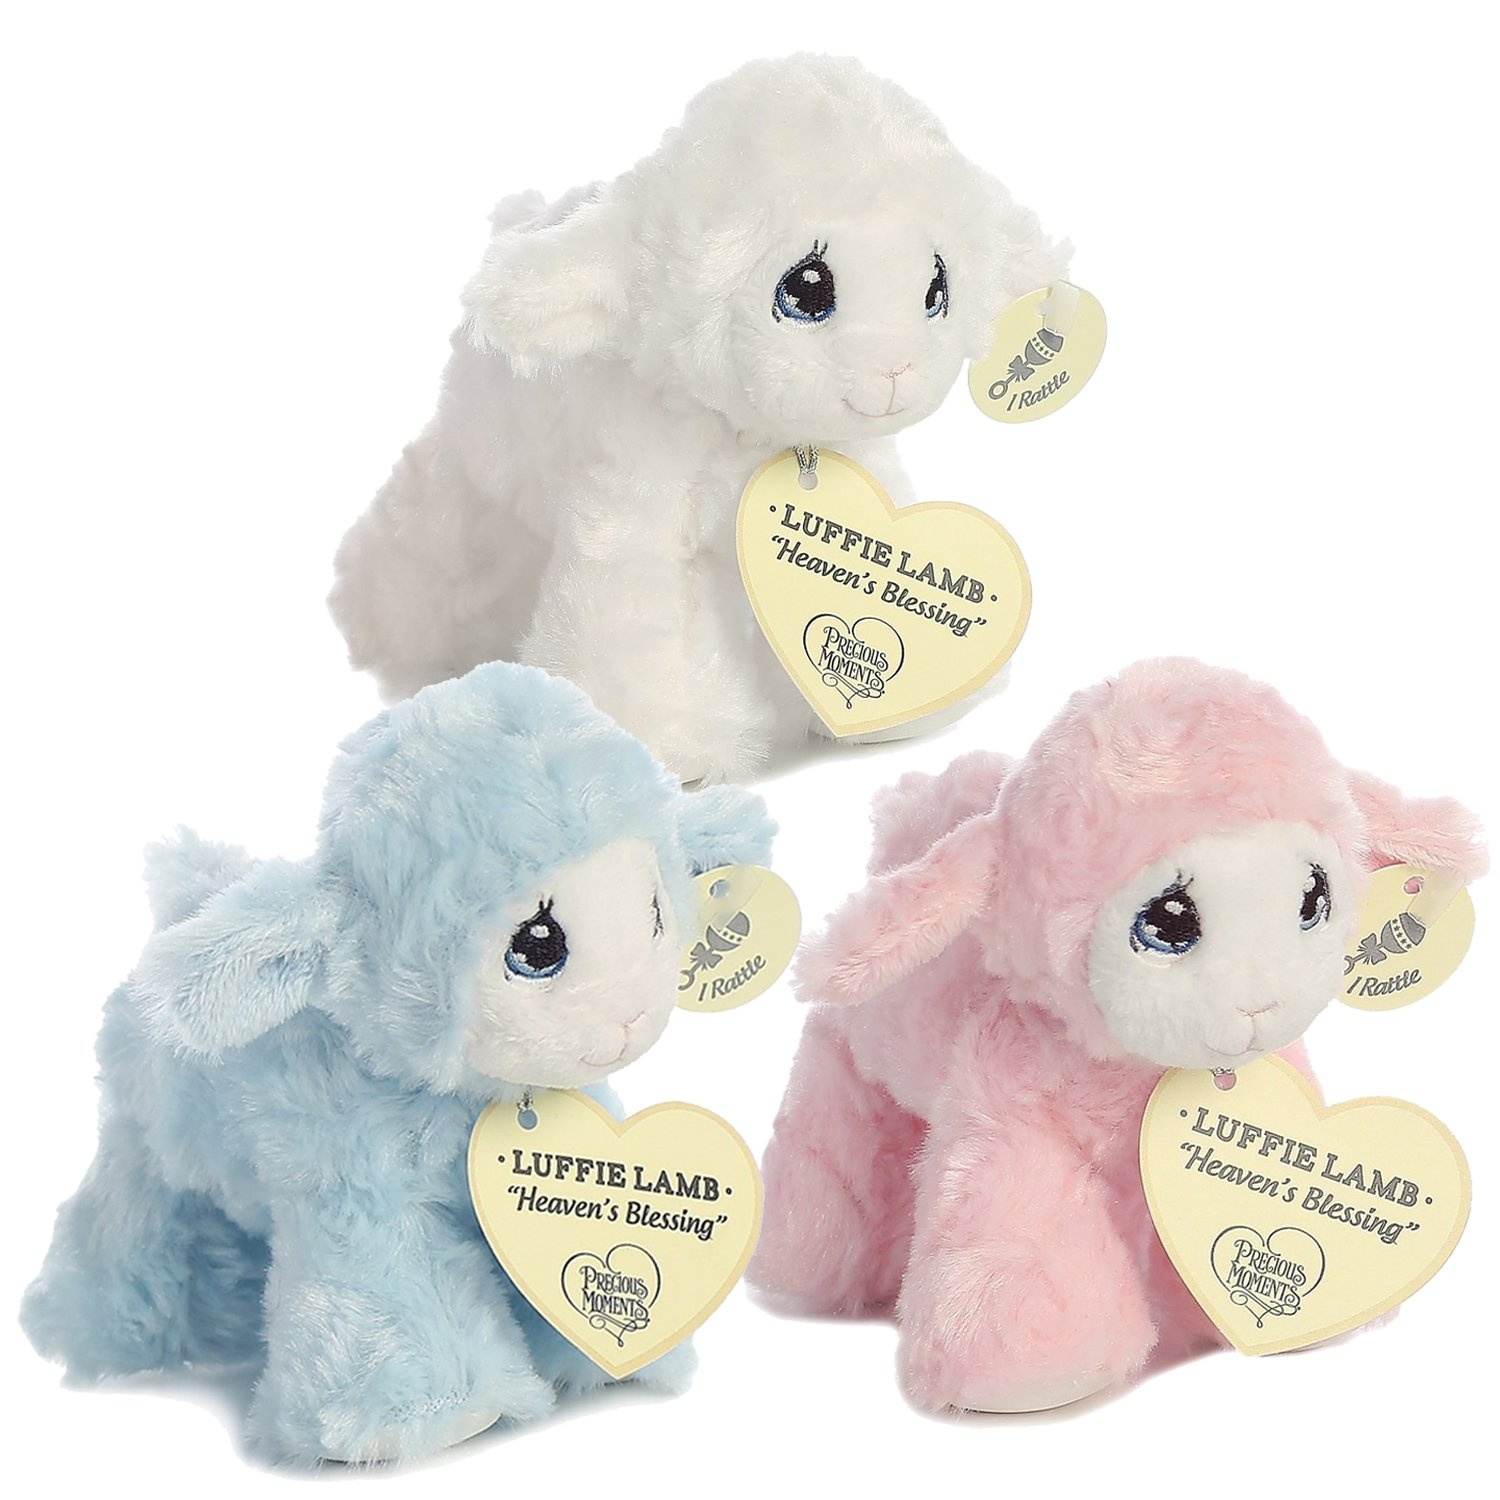 Precious Moments Luffie Lamb Heaven's Blessings Baby Rattle, Set of 3 (Pink, Blue & White)